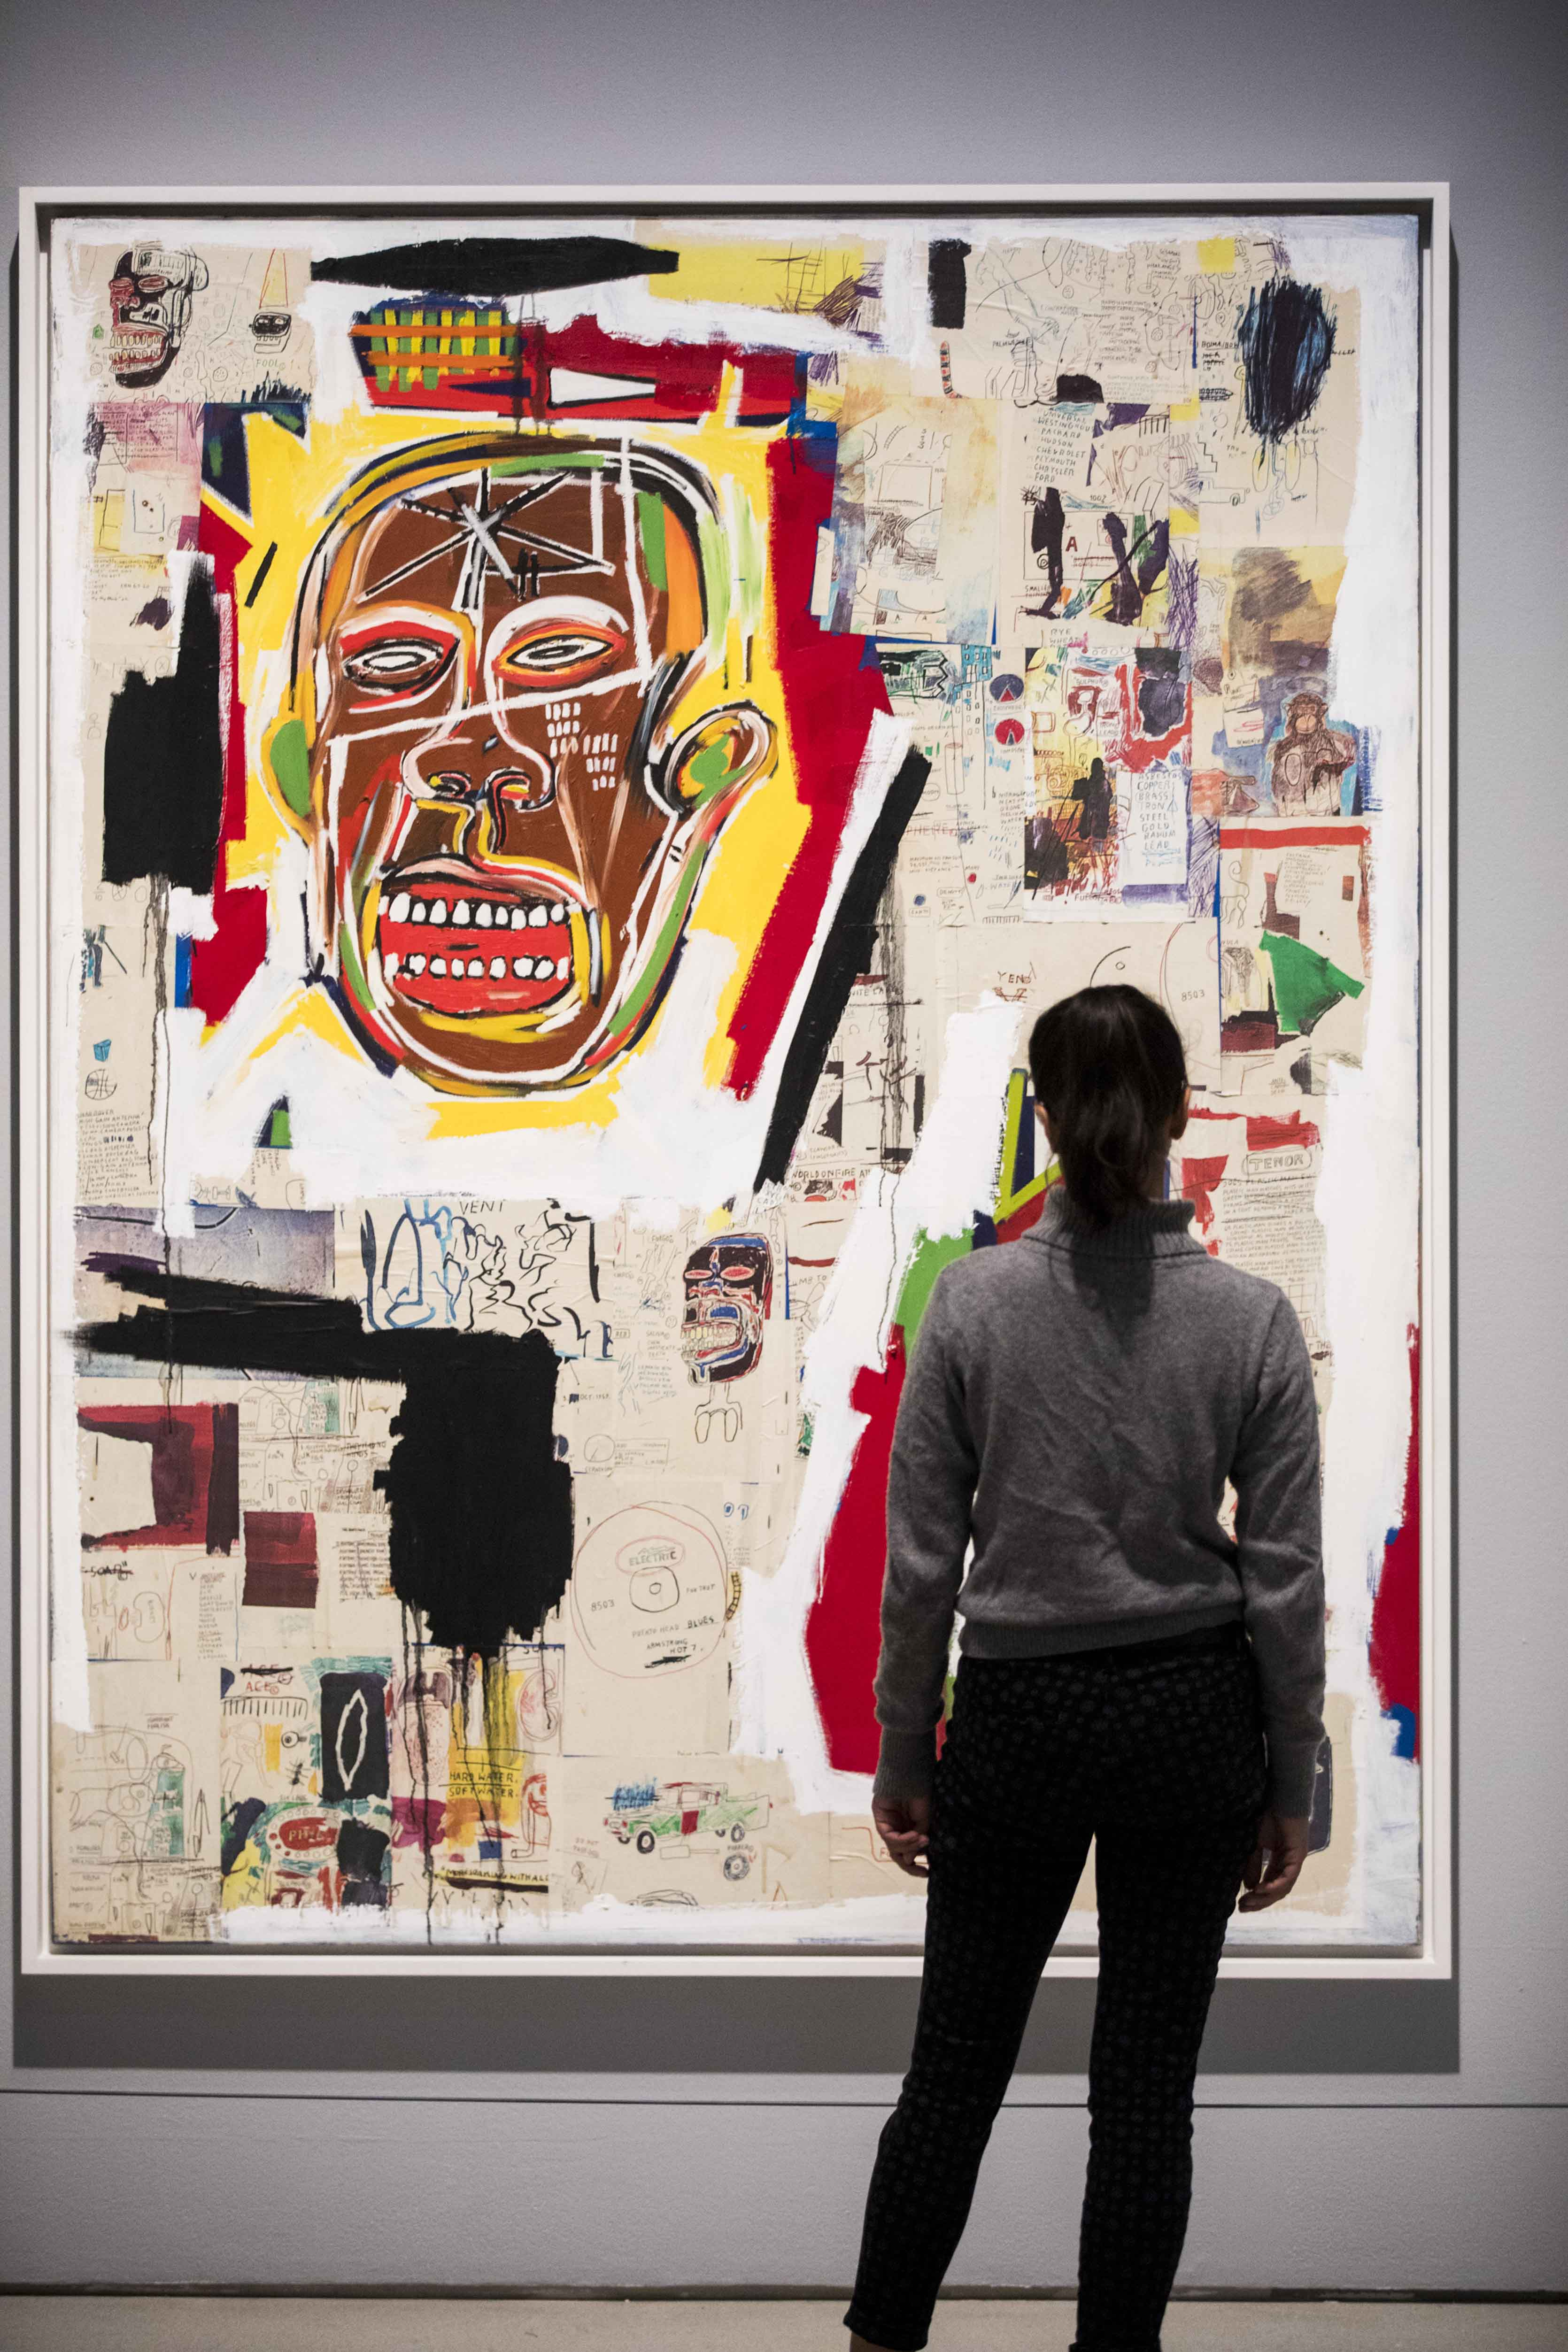 Basquiat: Boom For Real Installation view Barbican Art Gallery 21 September 2017 – 28 January 2018 © Tristan Fewings / Getty Images Artwork: Jean-Michel Basquiat King of the Zulus, 1984-85 © The Estate of Jean-Michel Basquiat. Licensed by Artestar, New York